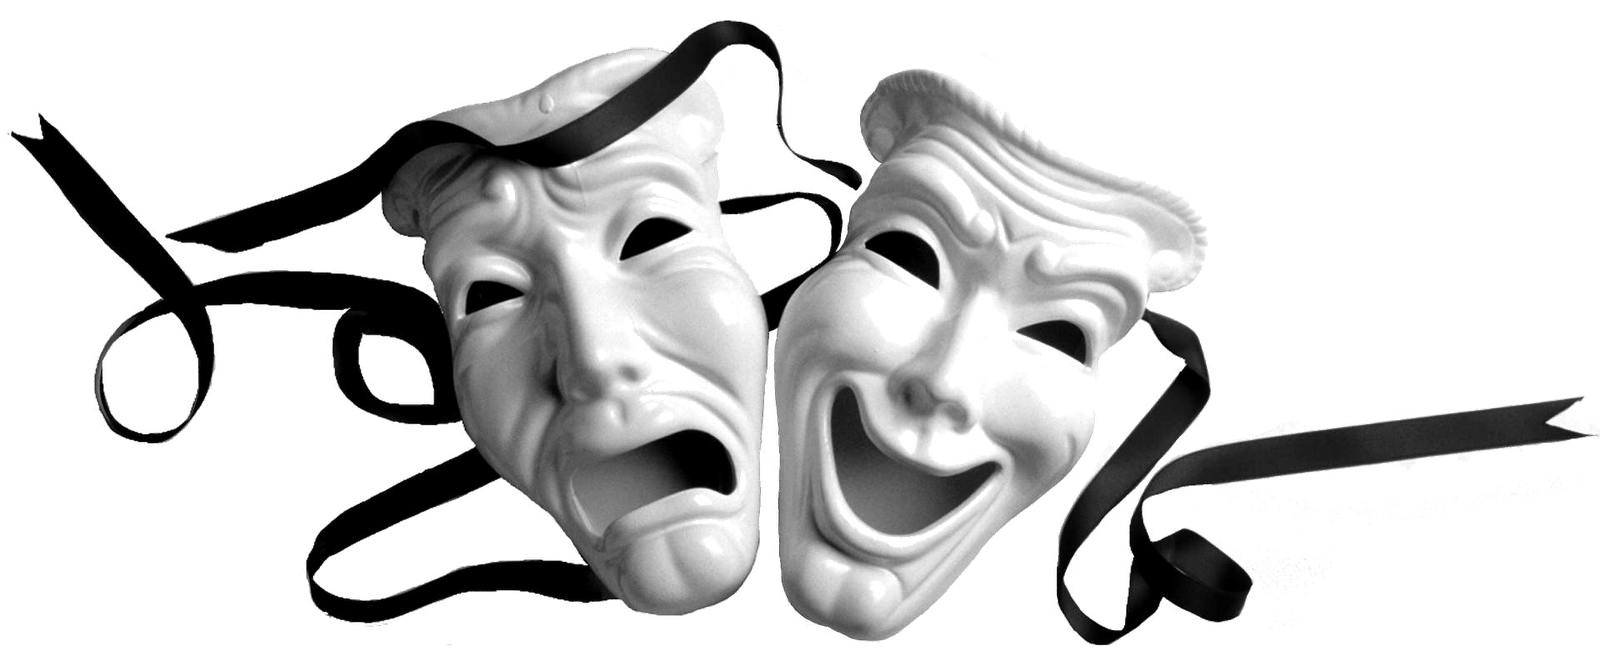 Mask clipart mime. Actor png transparent images